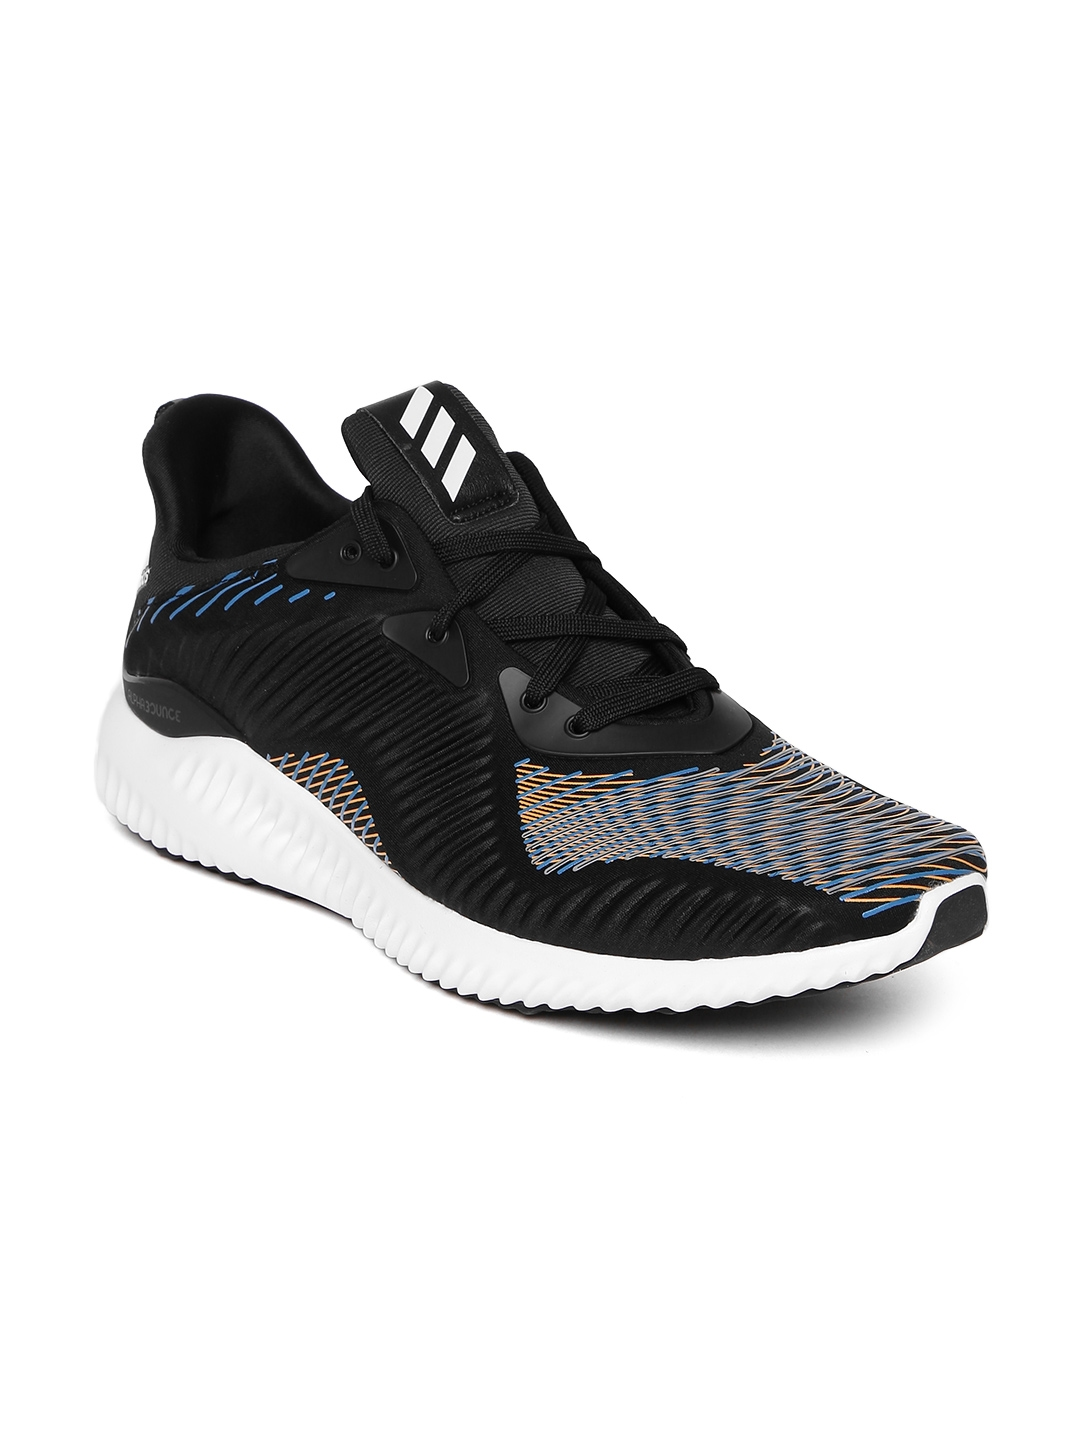 new arrival e9f27 f07f4 ADIDAS Men Black Alphabounce HPC Printed Running Shoes